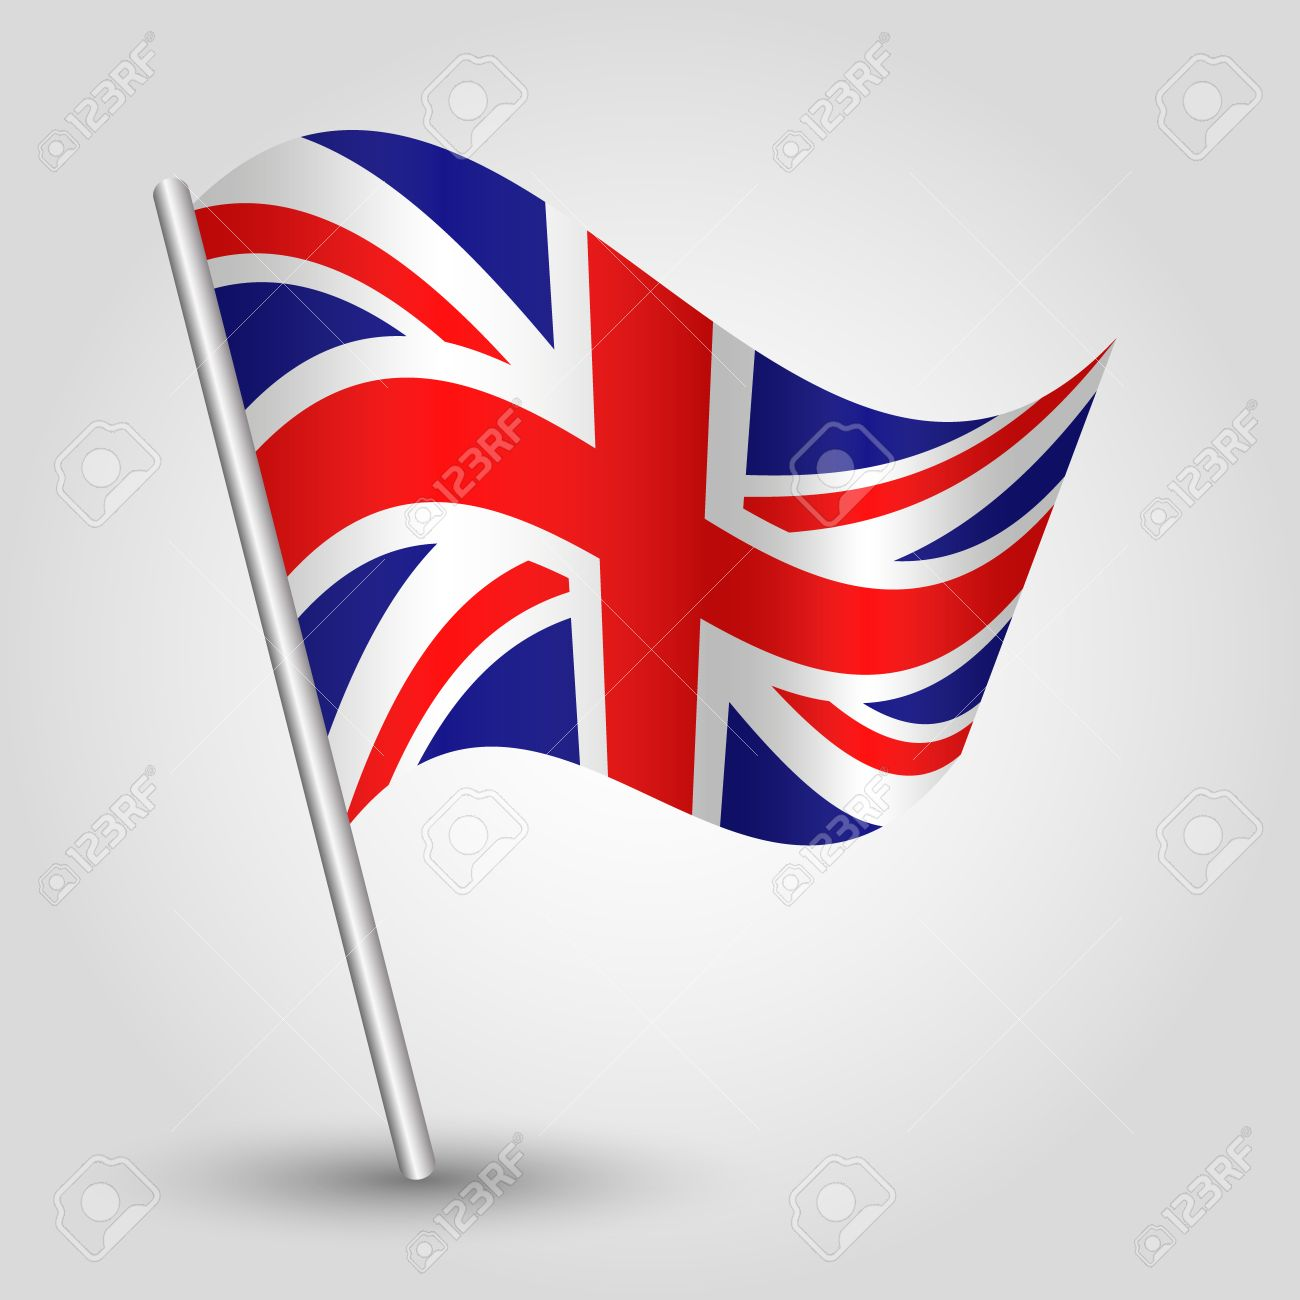 5a09b7a40b23 Vector - vector 3d waving english flag on pole - national symbol of United  Kingdom UK - England and Ireland with inclined metal stick